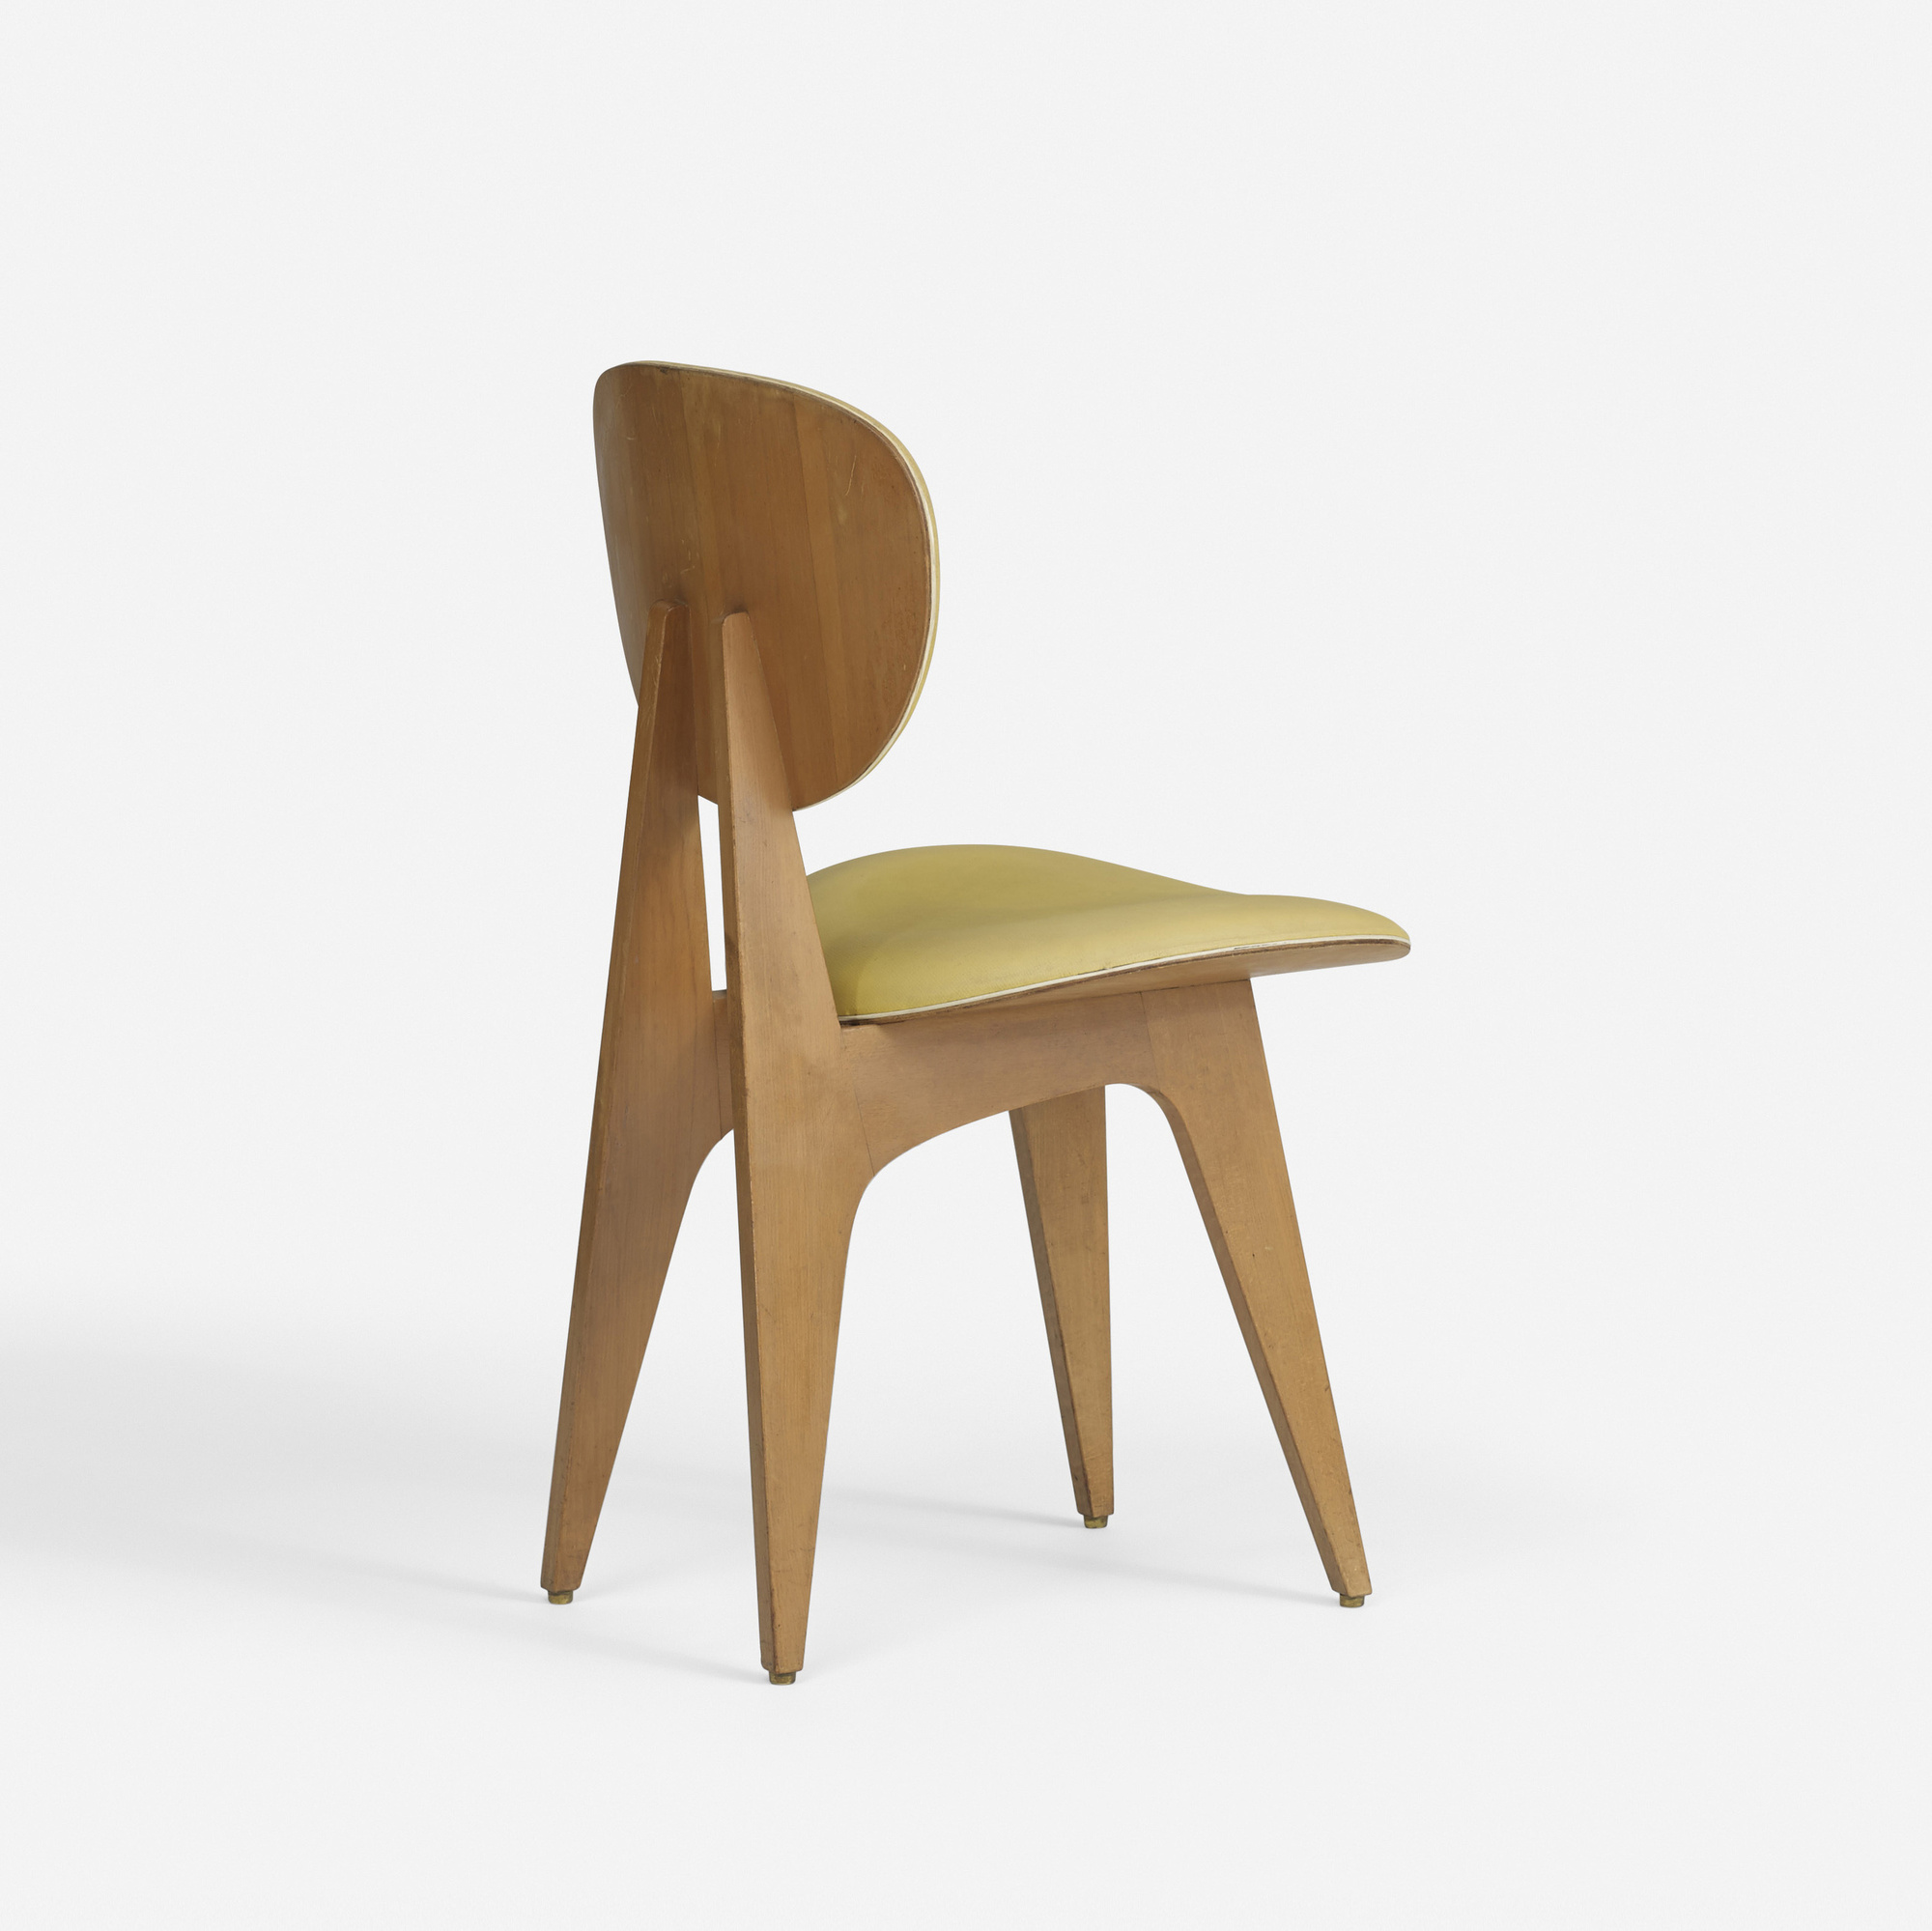 706: Junzo Sakakura / chair, model 3222 (1 of 1)